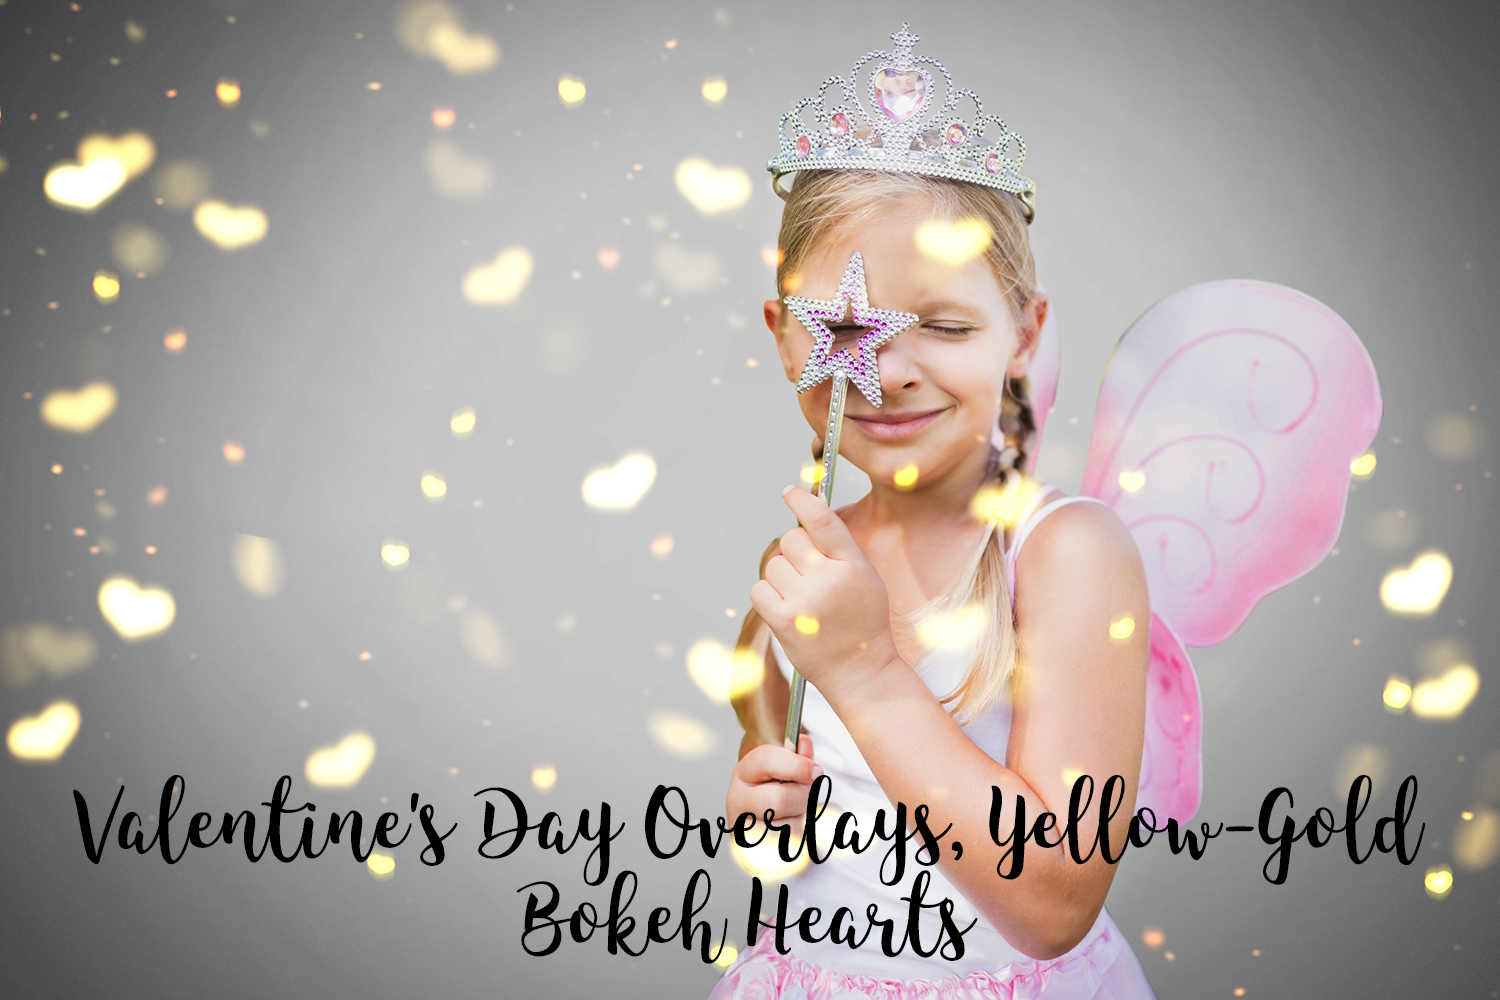 Valentine's Day Overlays, Yellow Gold Hearts Bokeh Overlays example image 1